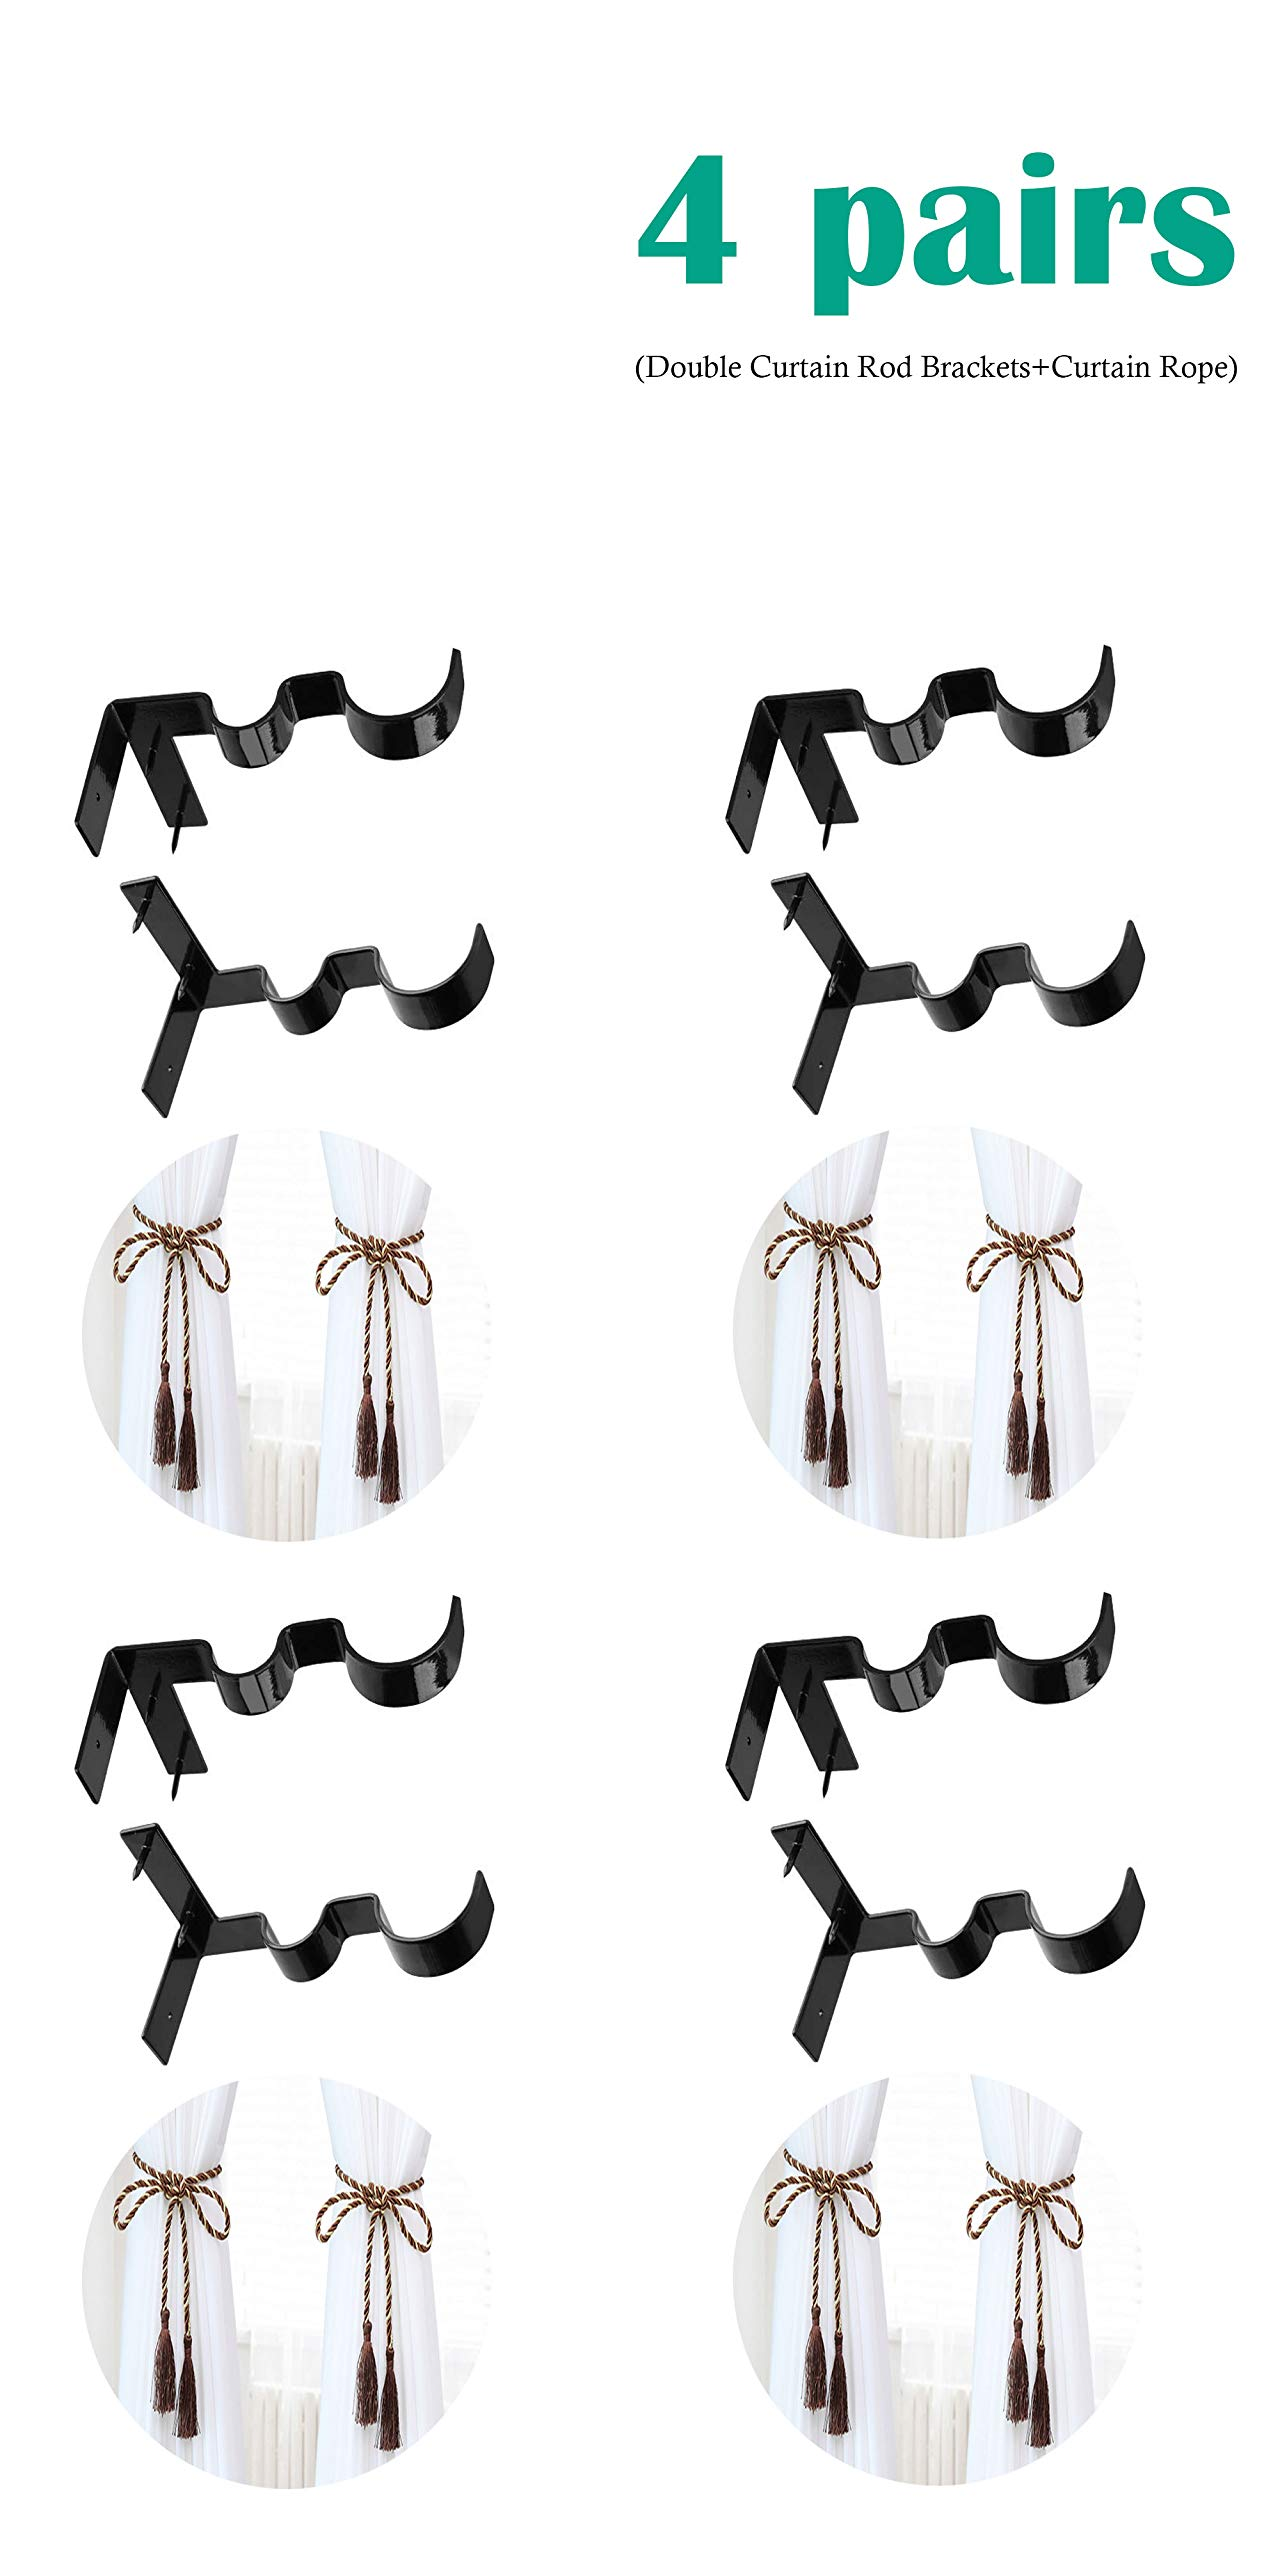 Tamicy Dual Curtain Rod Brackets 4 Sets(8Pcs) - Hang Double Center Hang Curtain Rod Holders No Drilling Tap Right Into Window Frame for Bedroom Window Decoration (4) by Tamicy